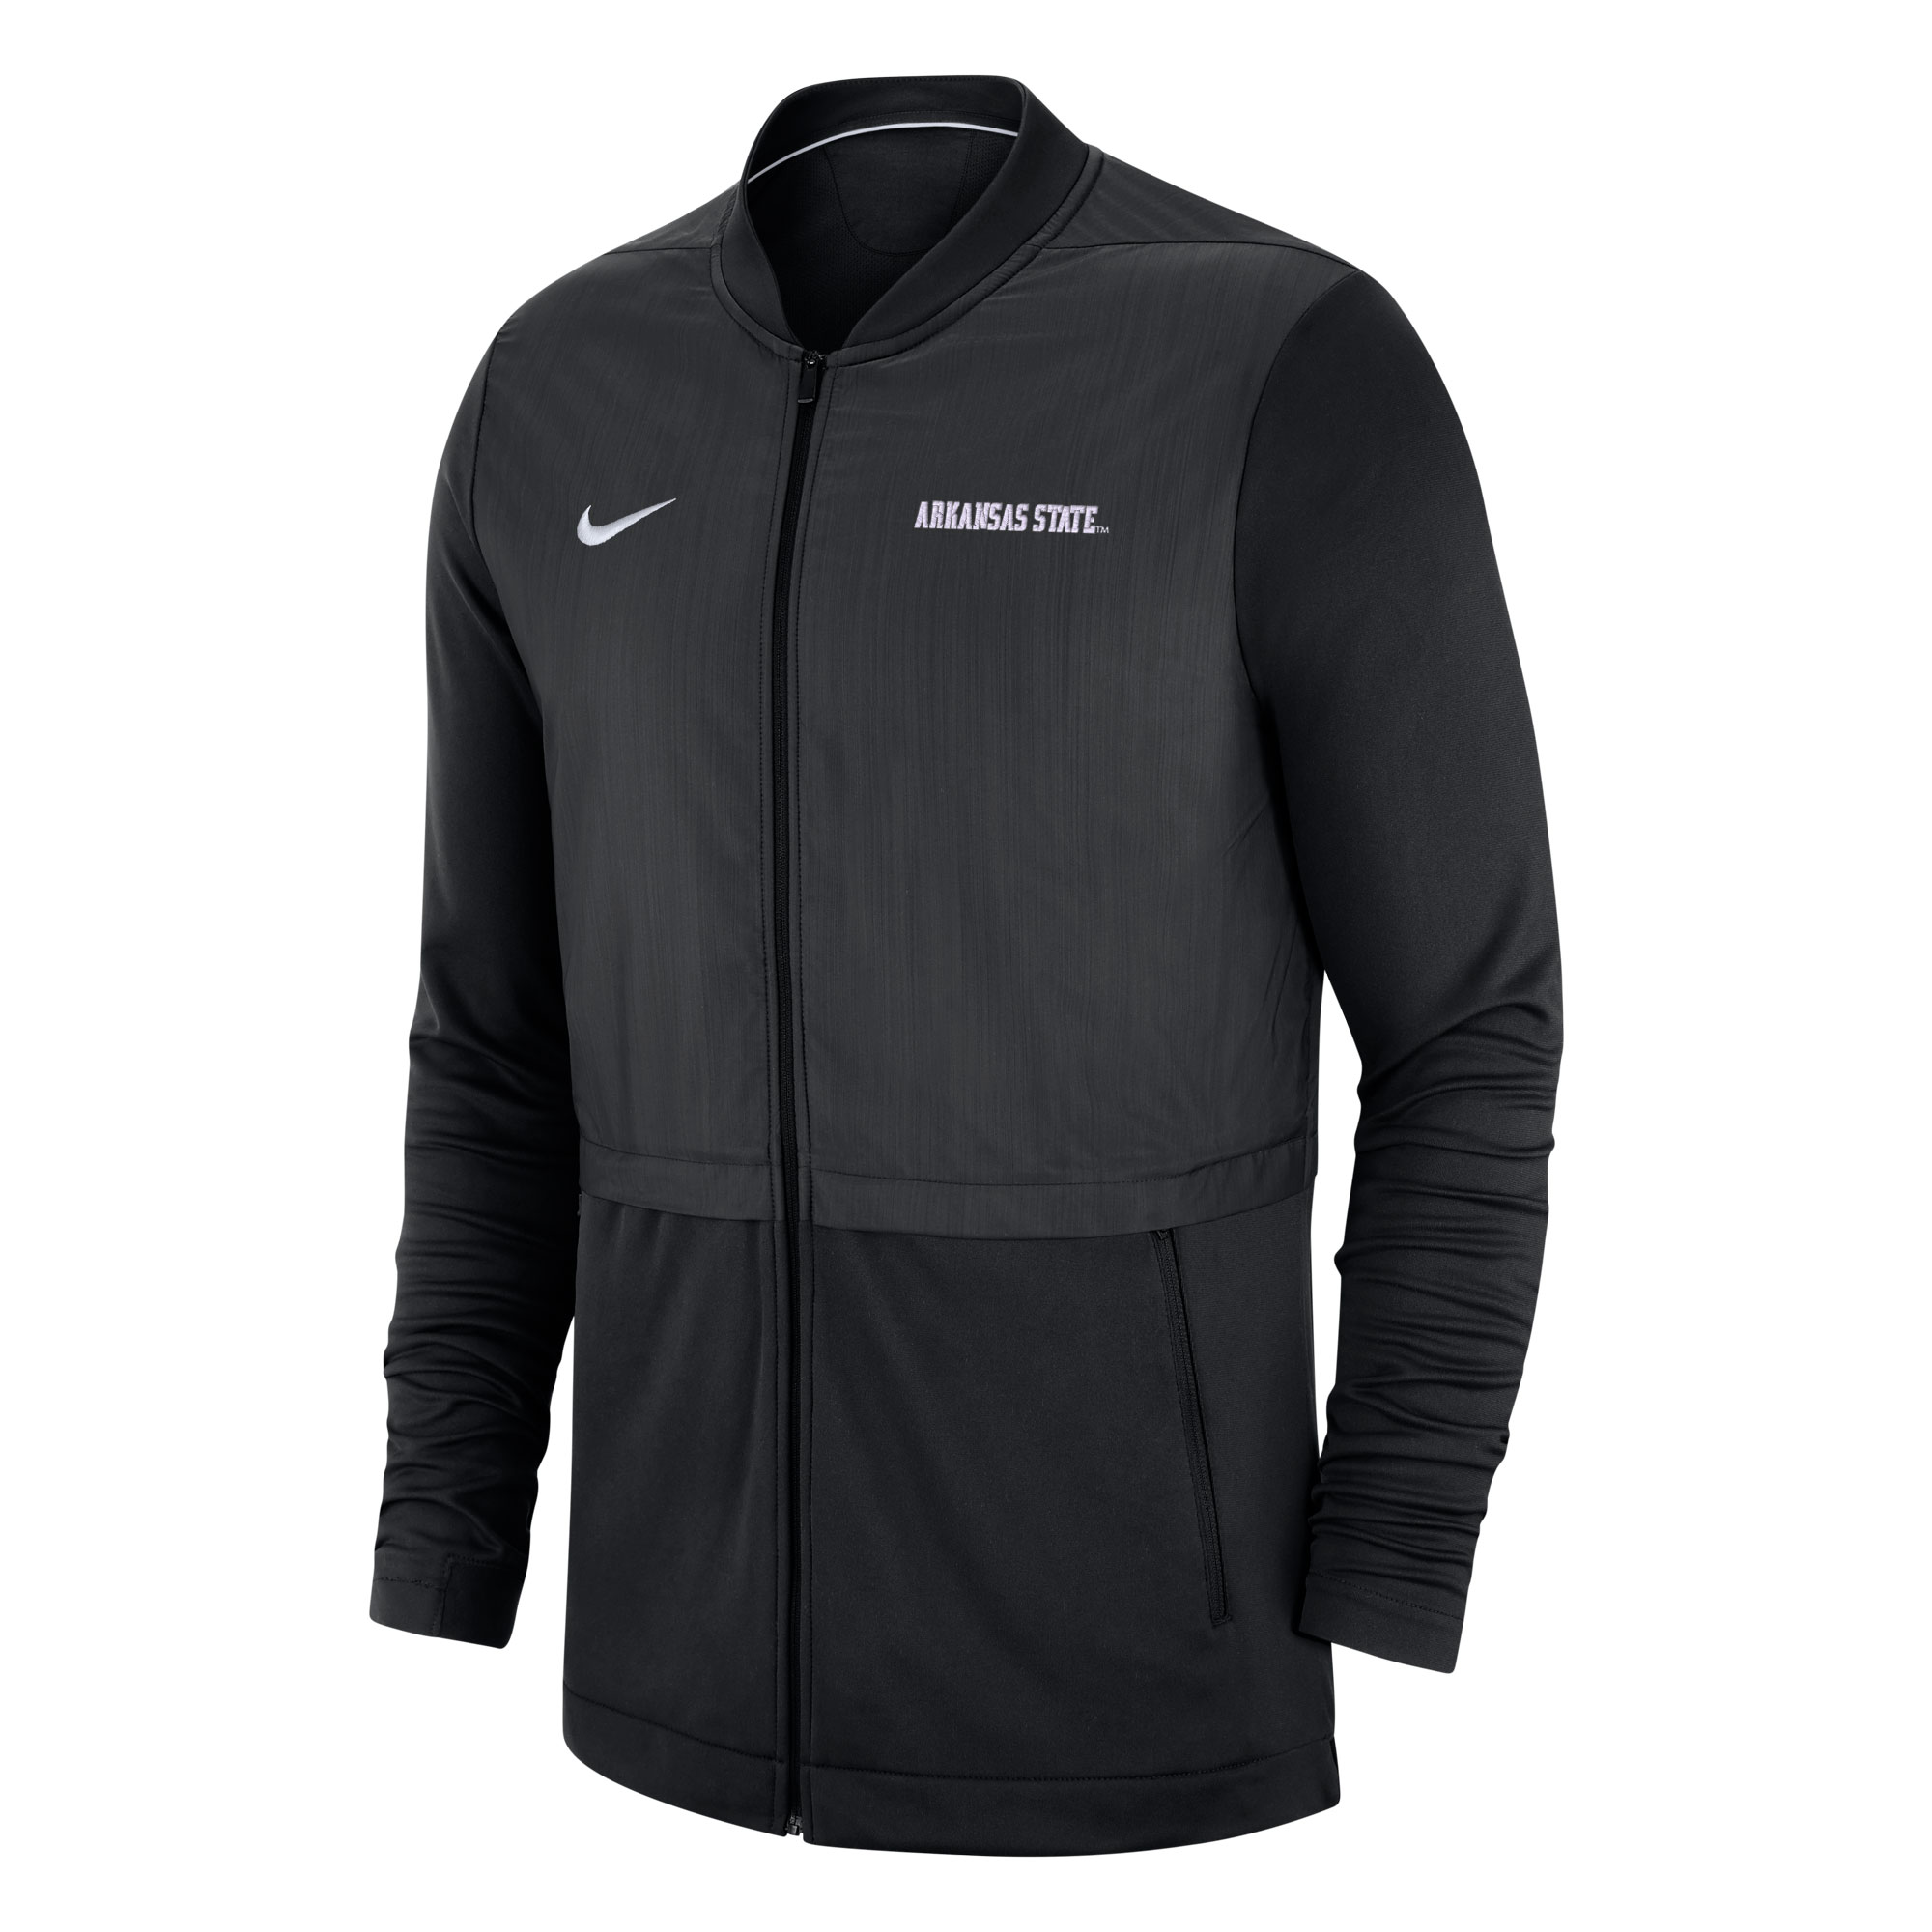 Arkansas State Elite Hybrid Jacket